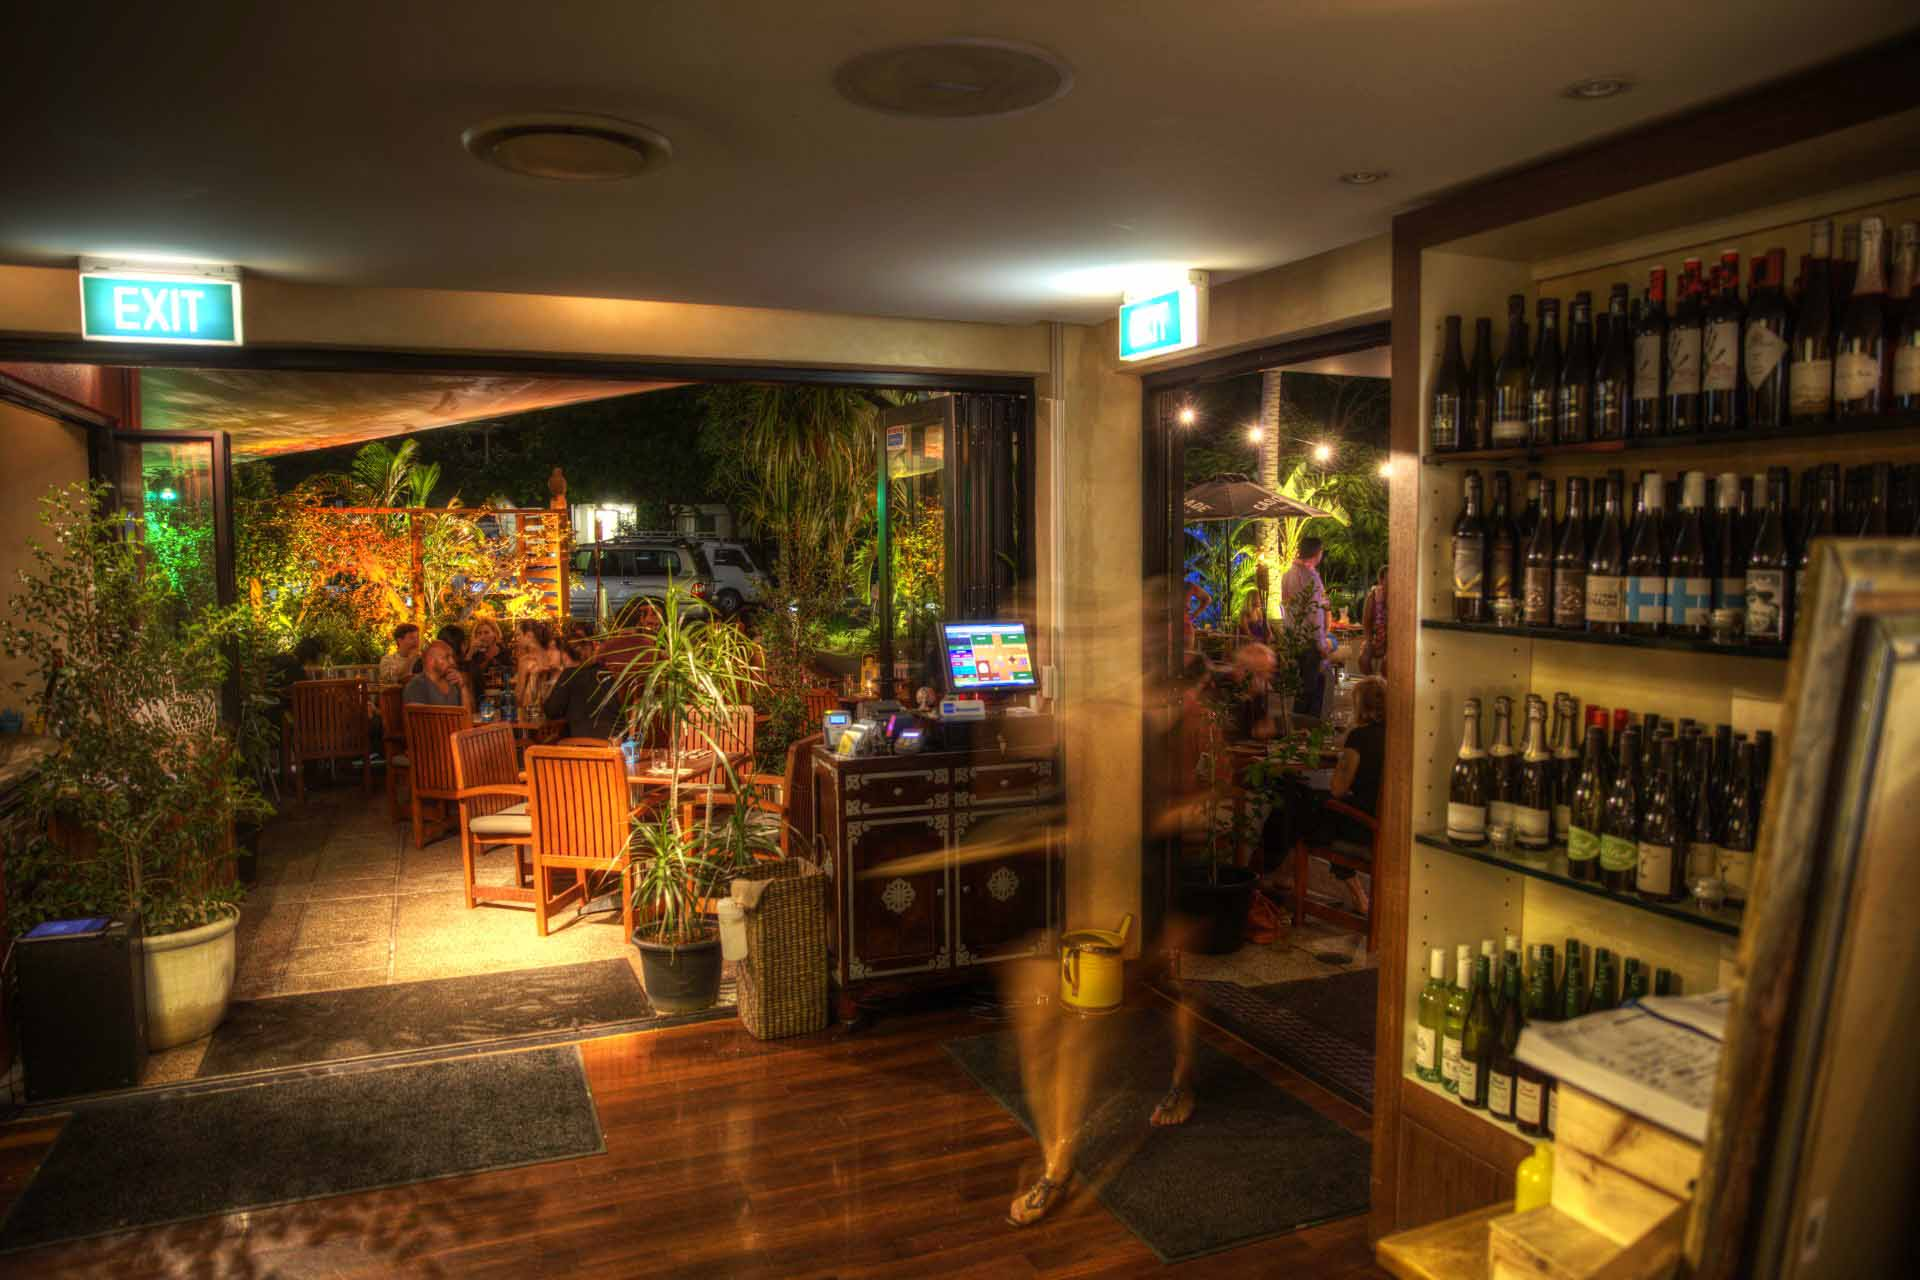 Summer House Restaurant & Bar – Venues